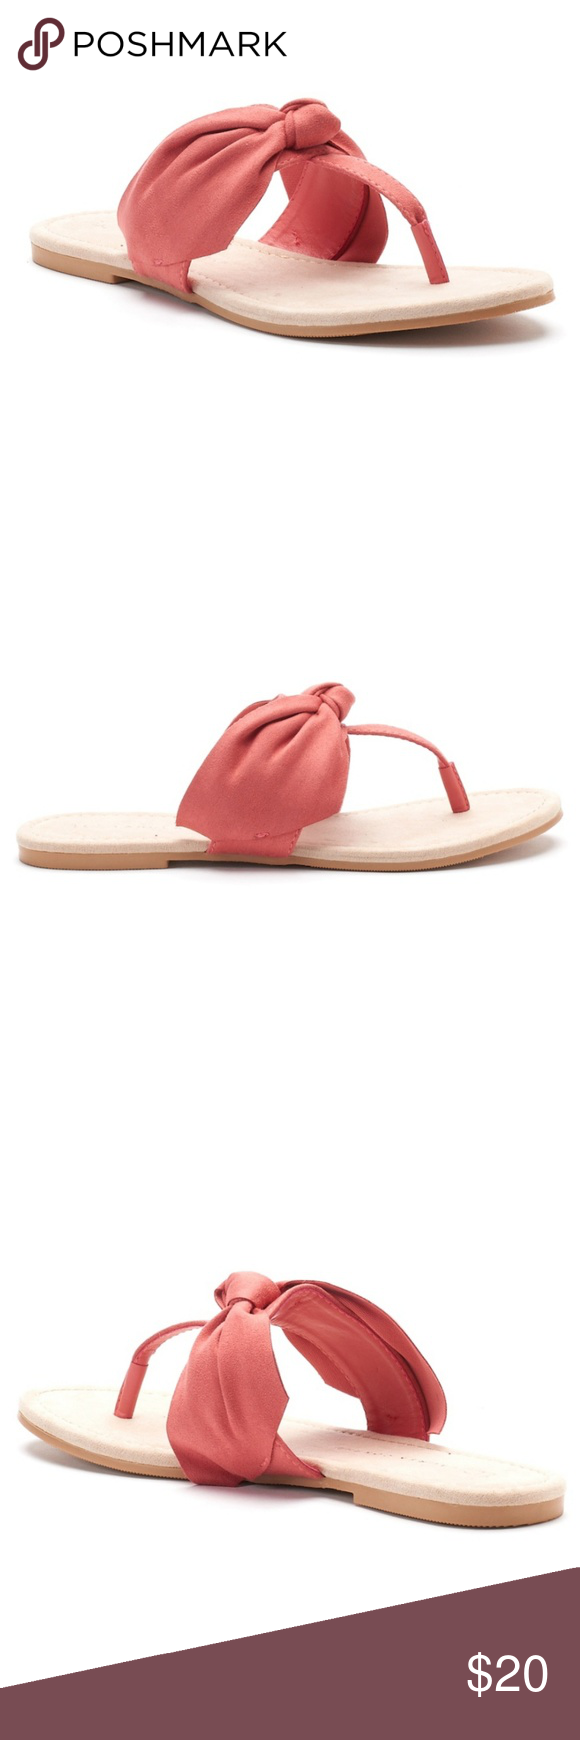 66689cb6721e NWT LC Lauren Conrad Floppy Knot Sandals Size 11 NWT . Brand New . Never  worn